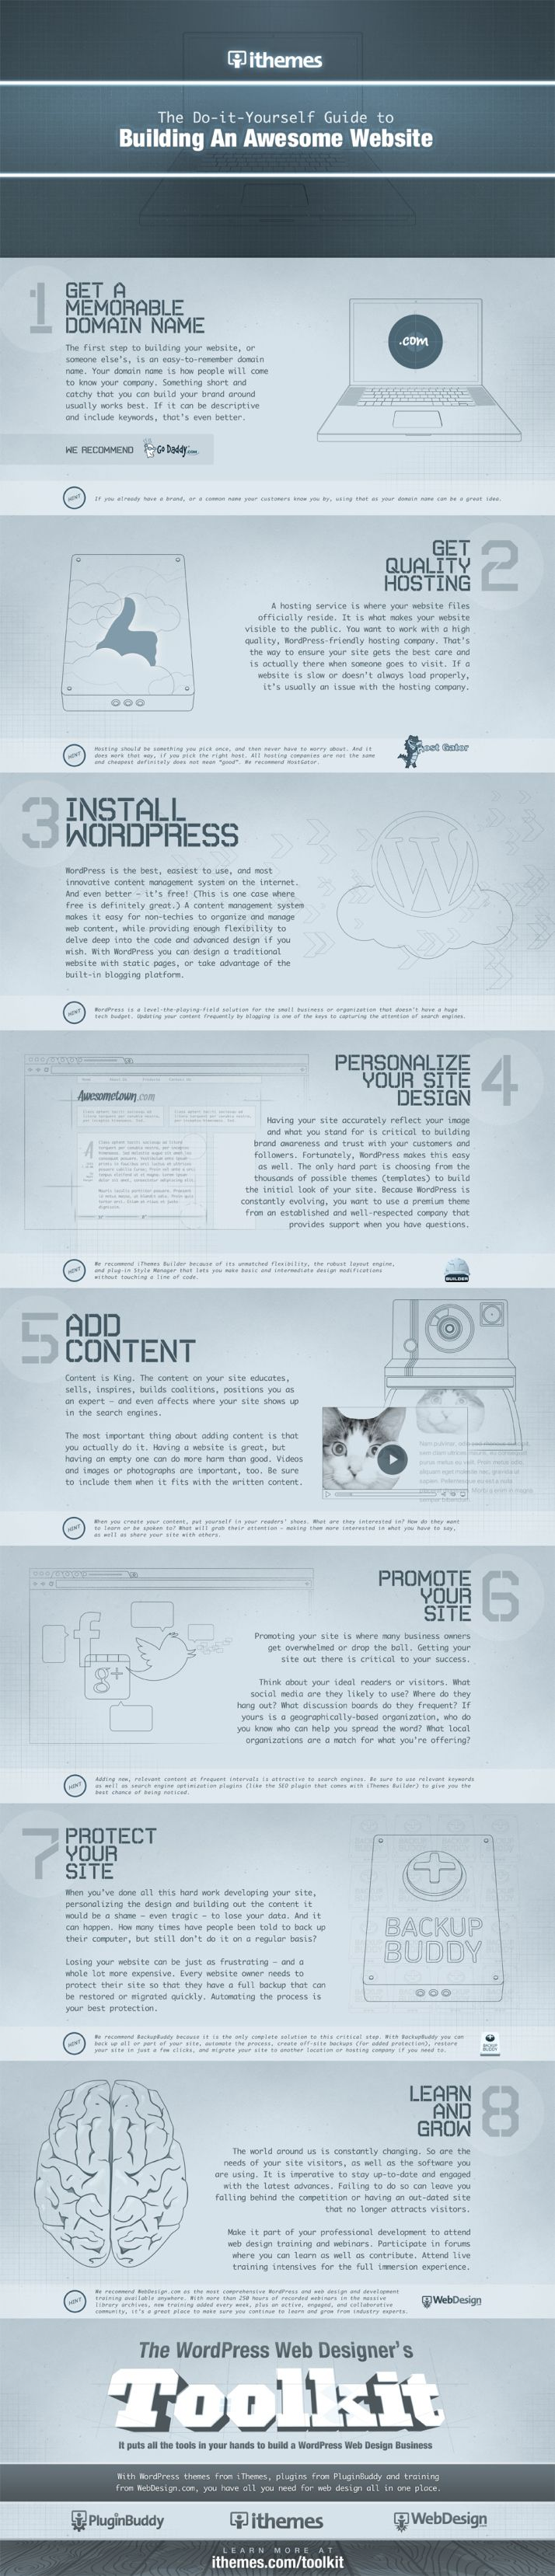 Building an Awesome web site #infographic. Principles of Web Design Basics. The importance of good web design.